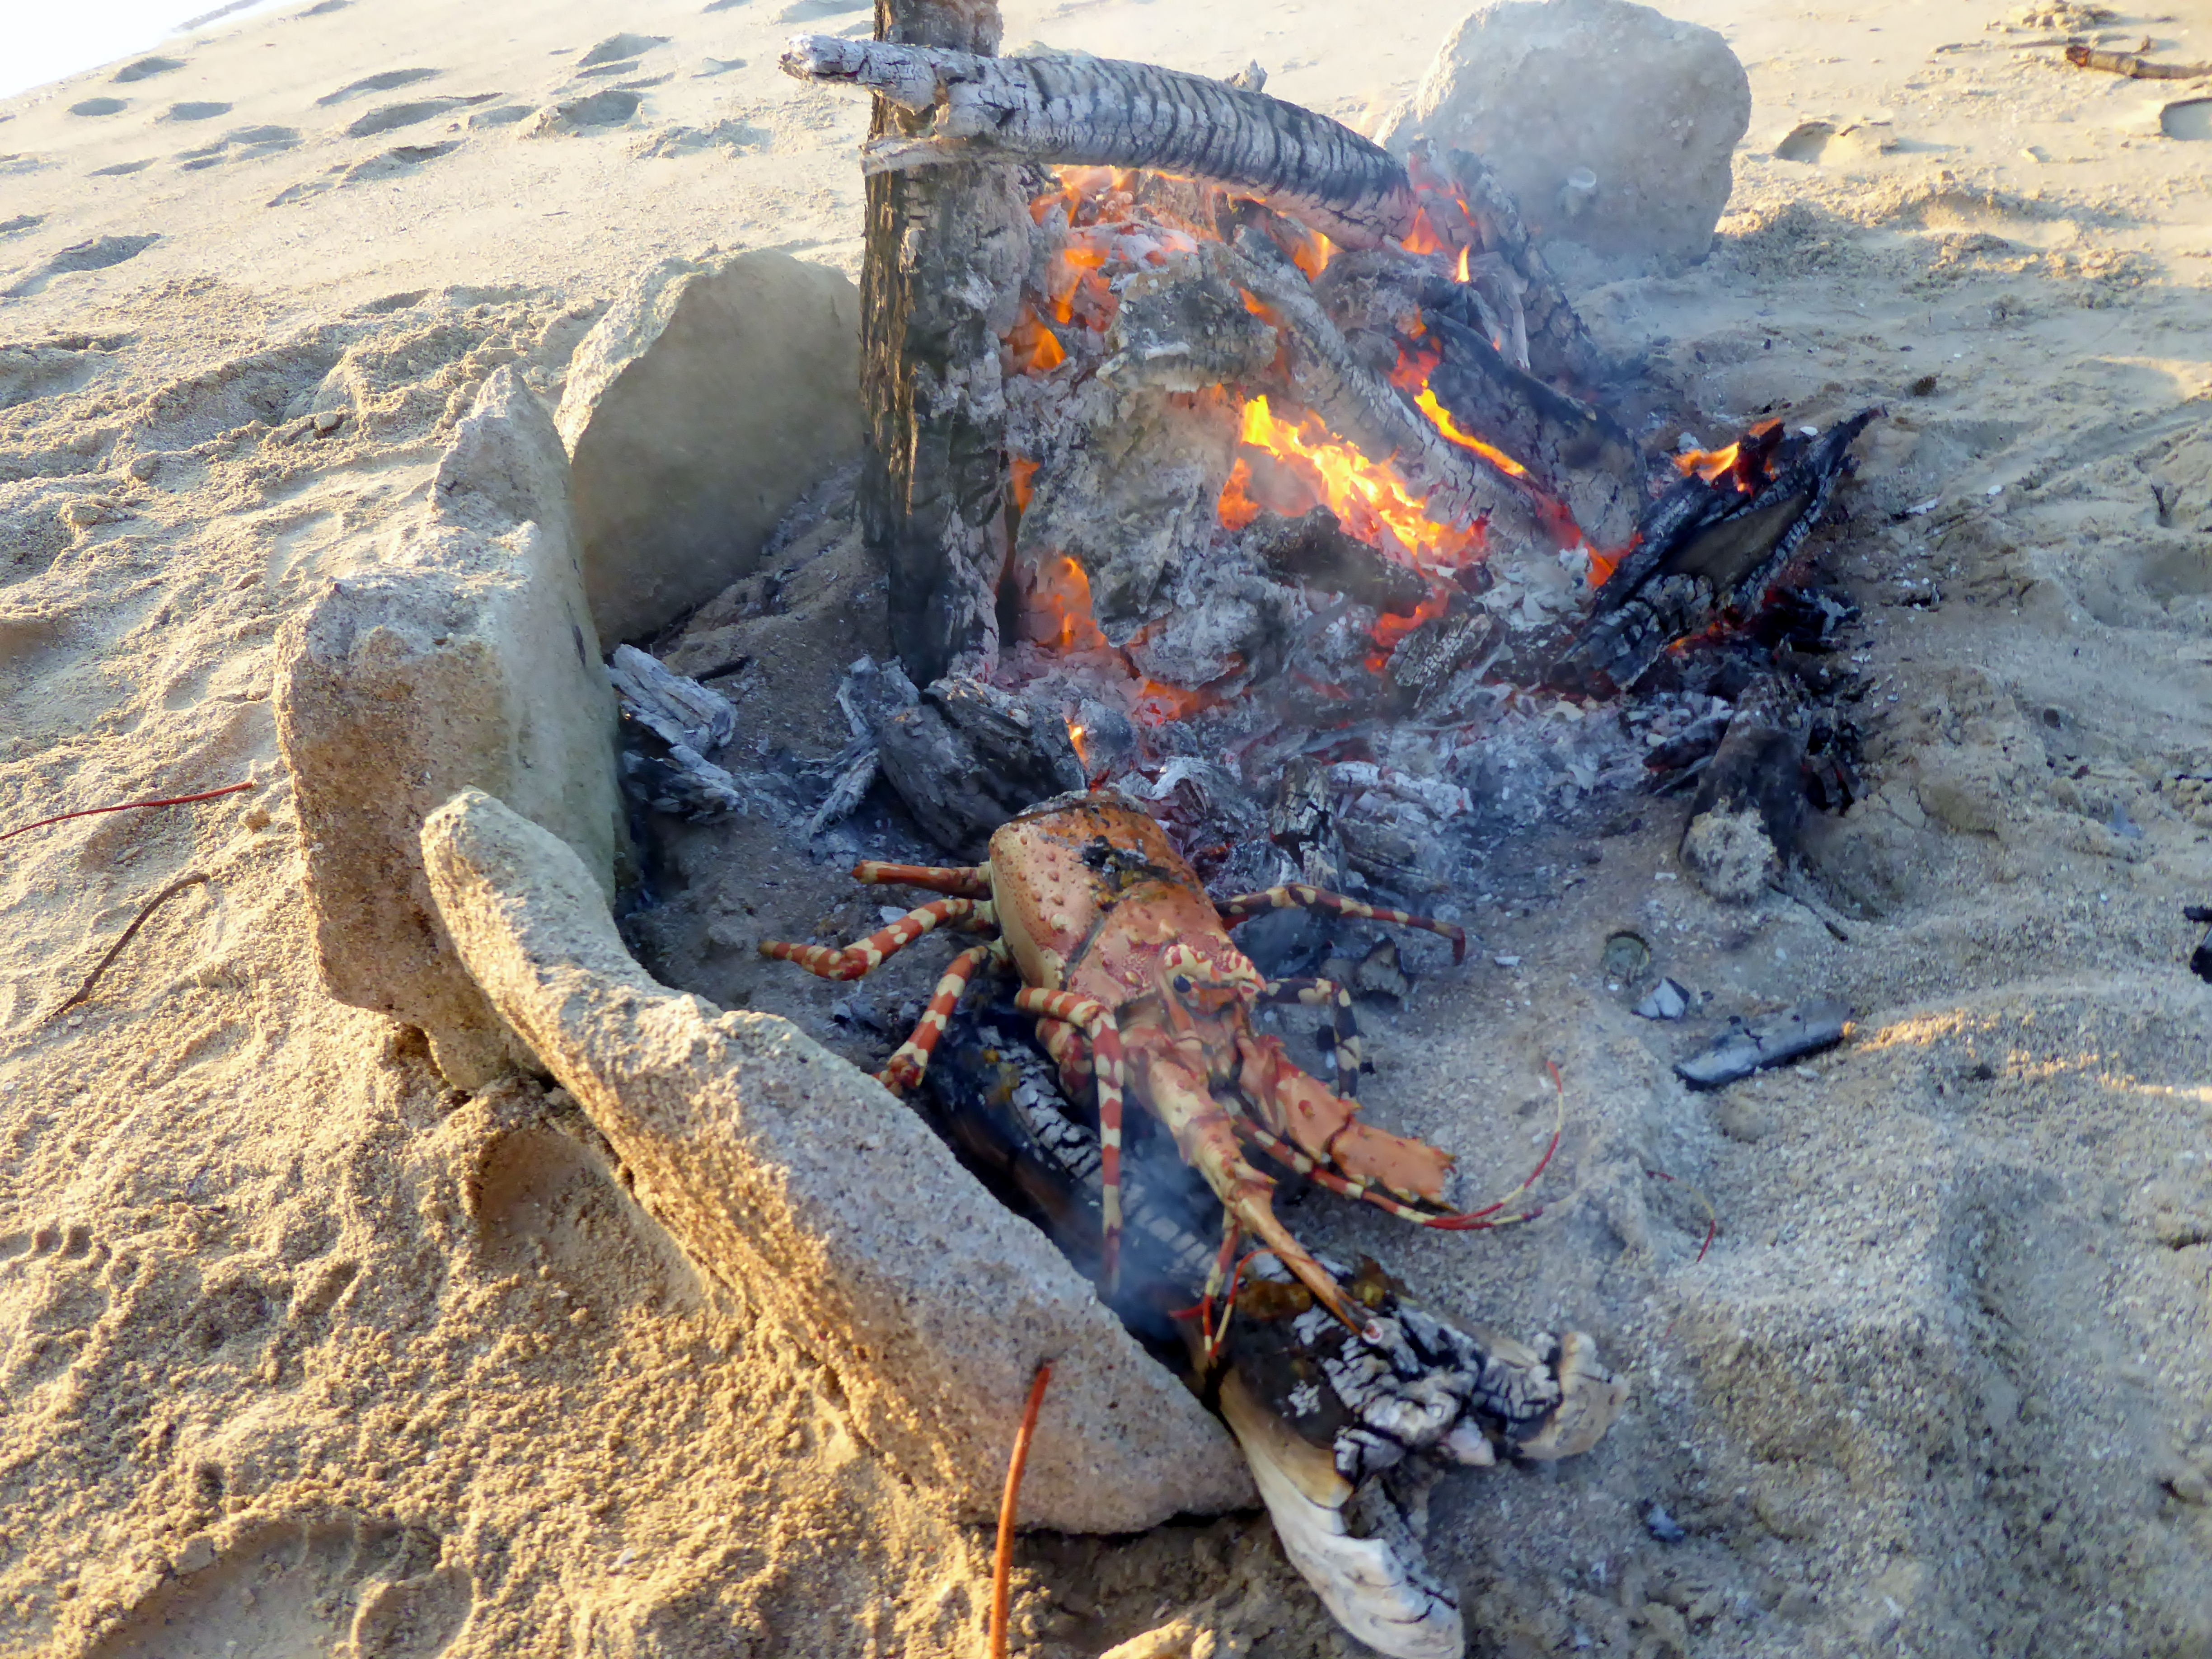 Fire on the beach cooking crayfish.